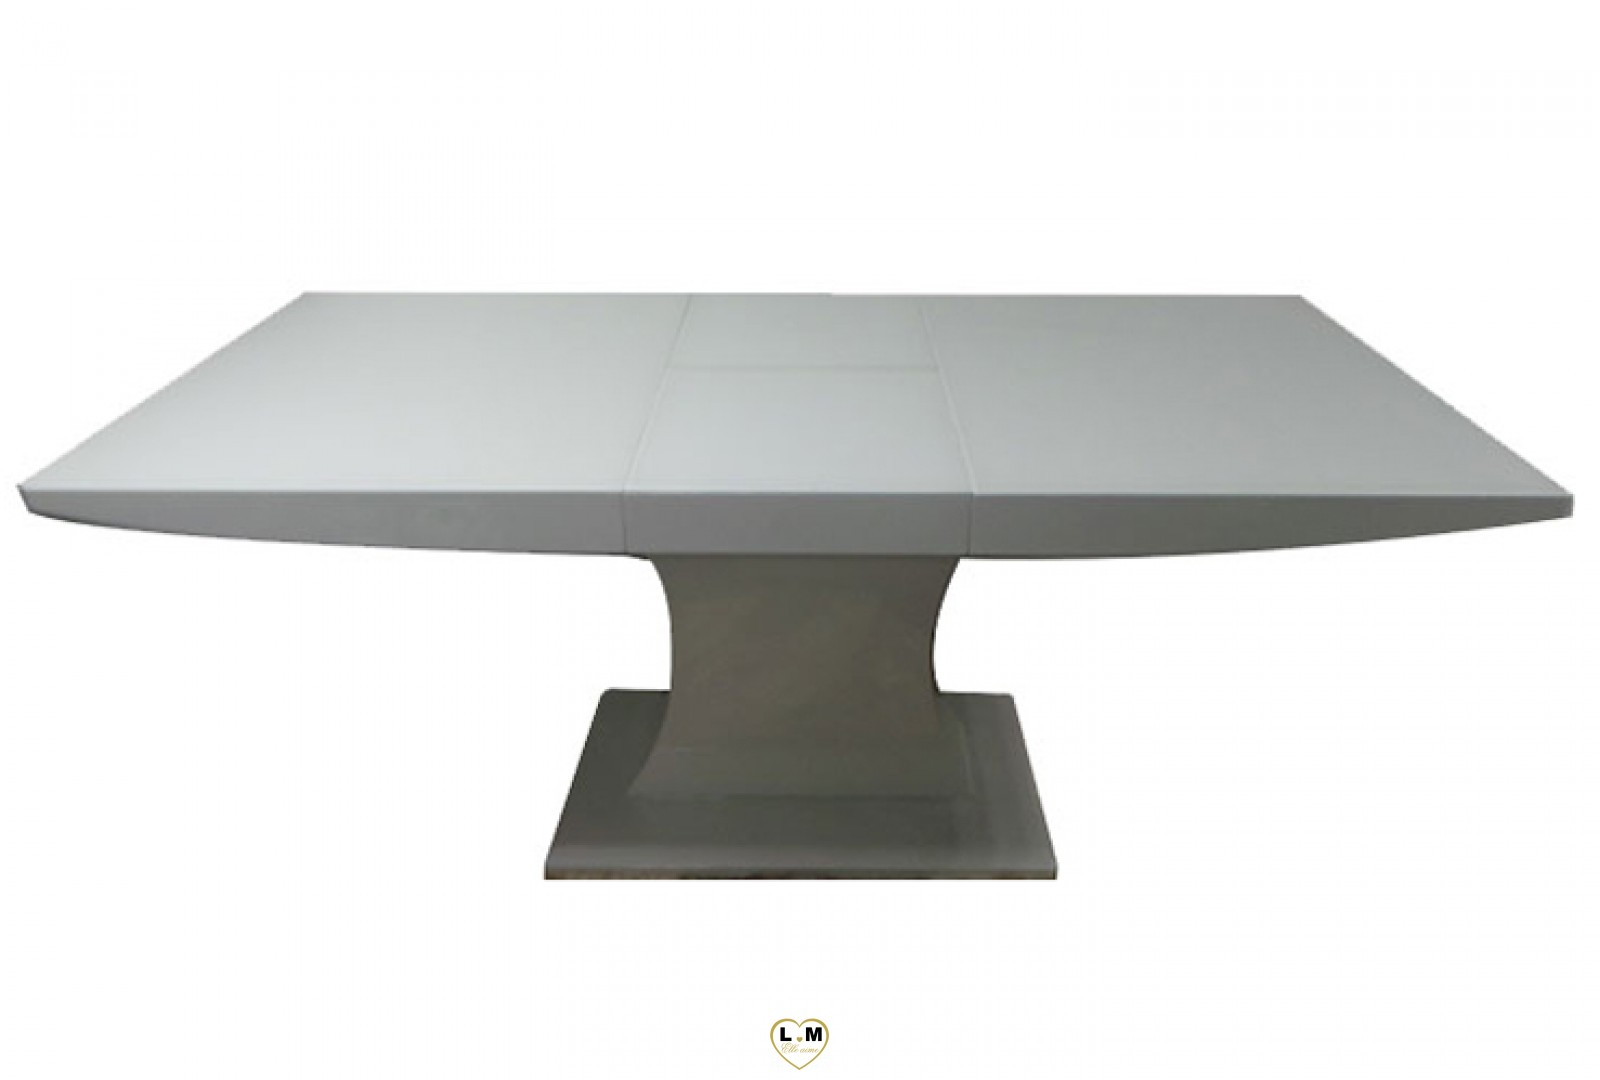 T b table allonge salle a manger laque blanc for Table salle a manger laque blanc rallonge